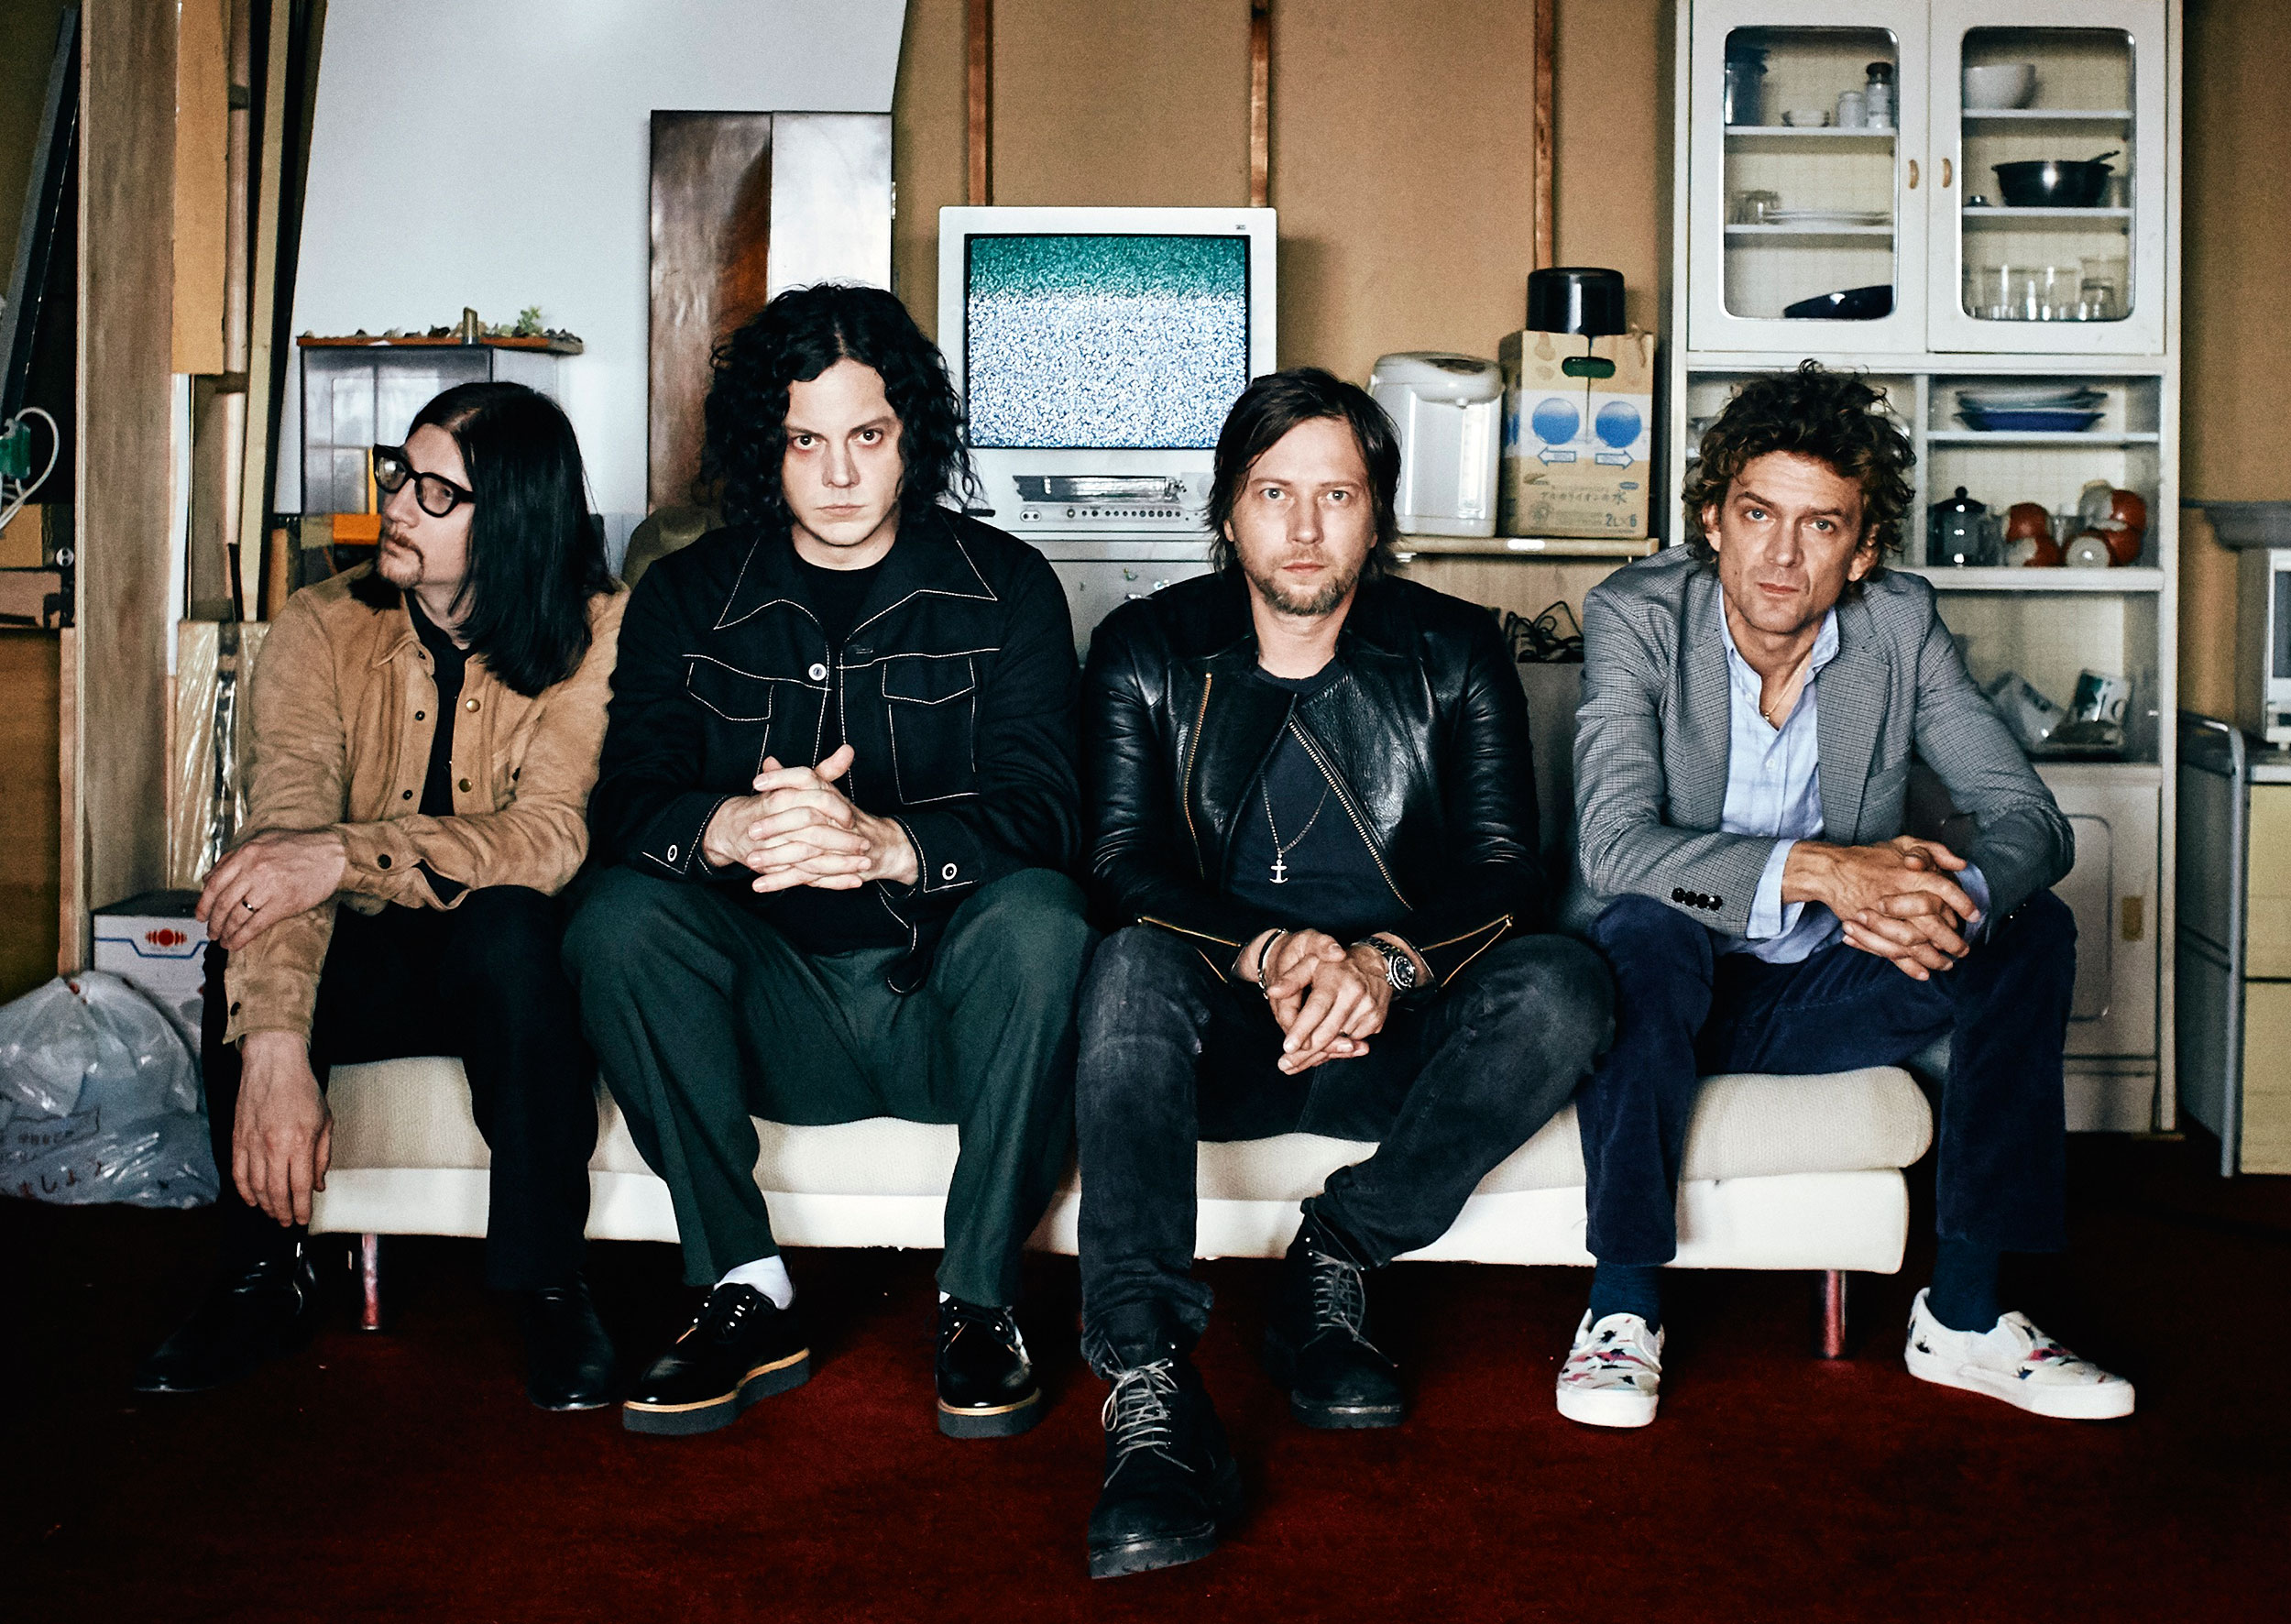 The Raconteurs Help Us Stranger Review: The Album Is a